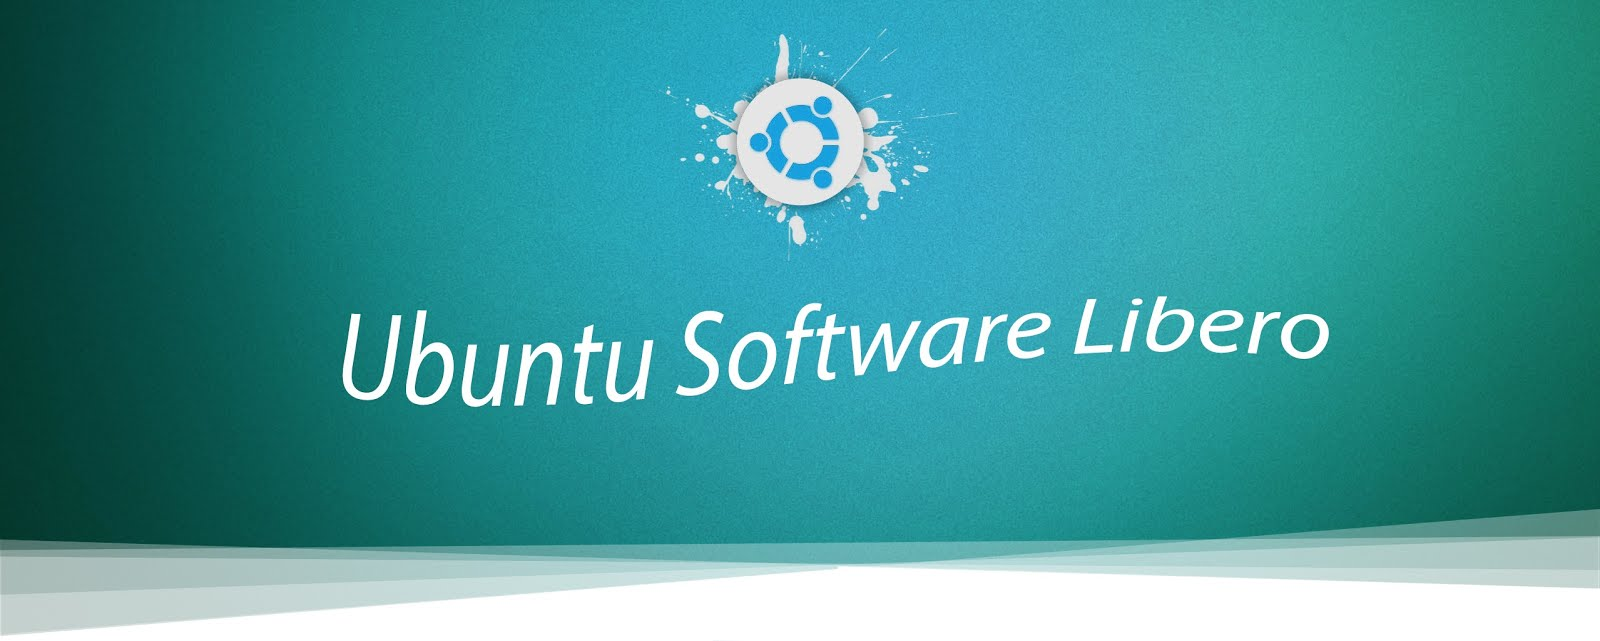 Ubuntu Software Libero: The World Of Linux